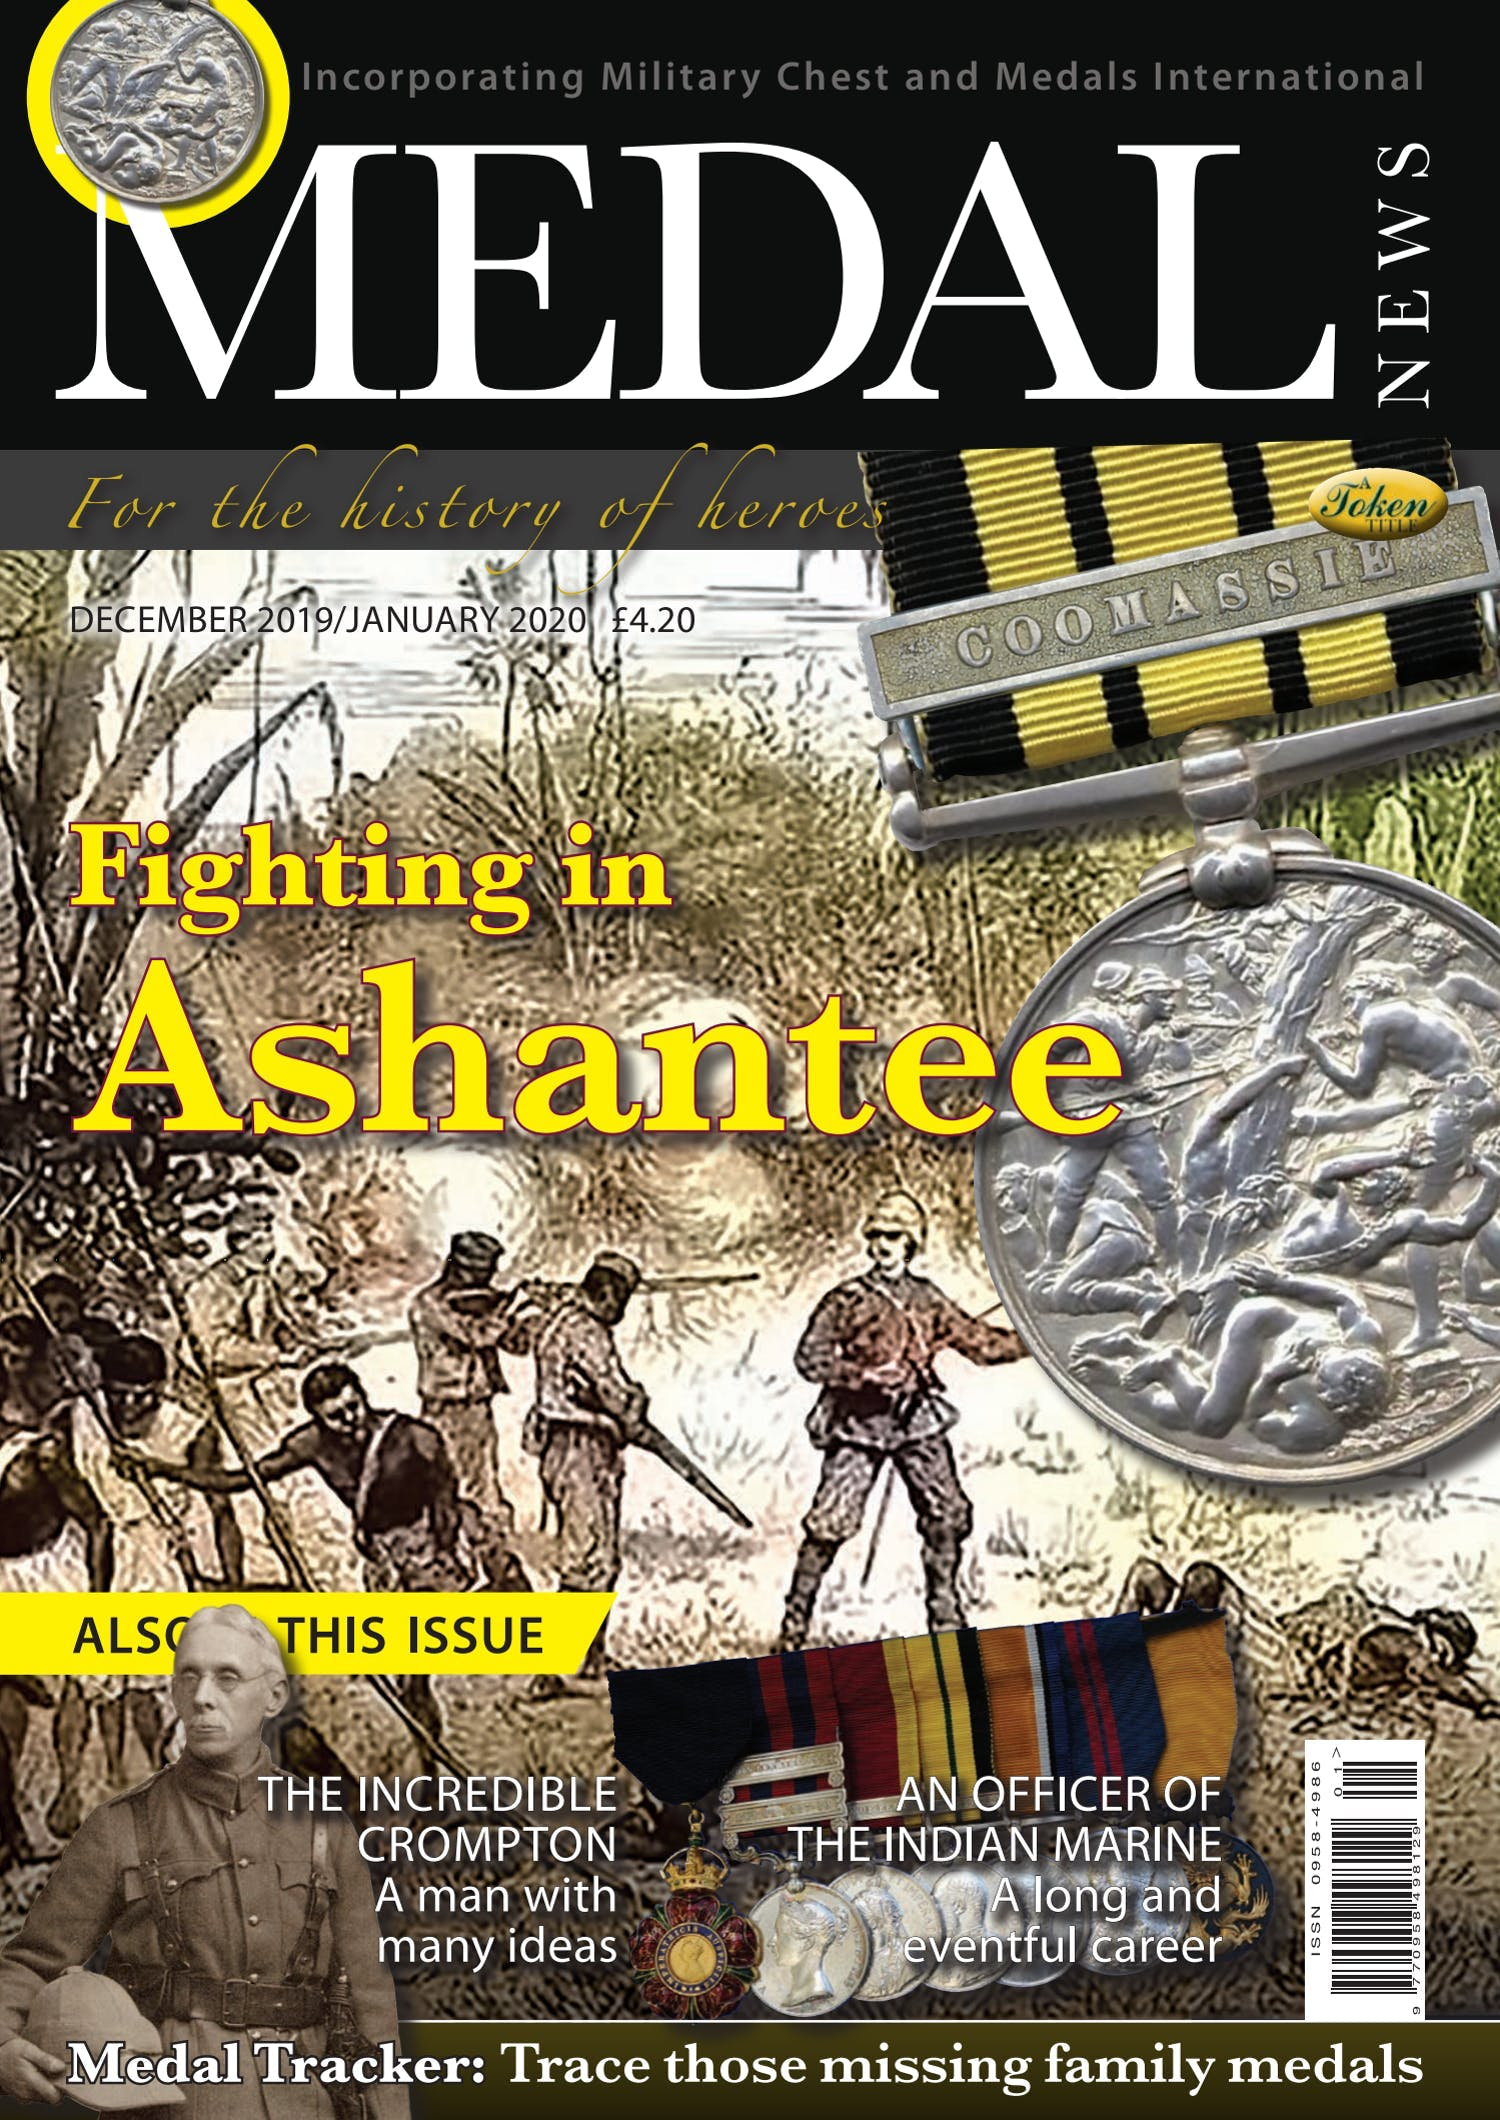 The front cover of Medal News, Volume 58, Number 1, January 2020